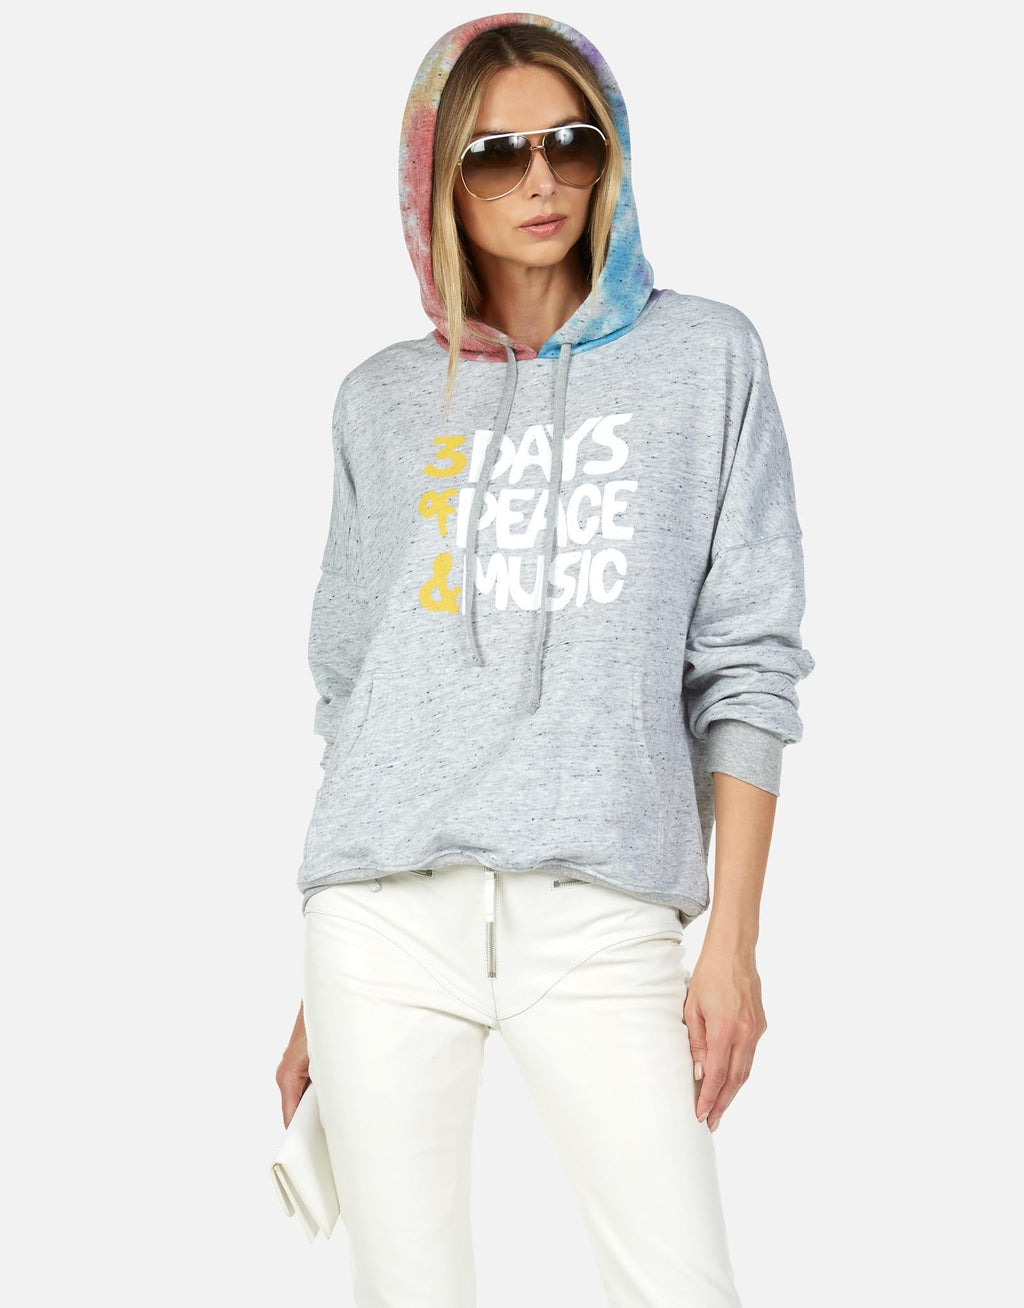 Woodstock Sweatshirt